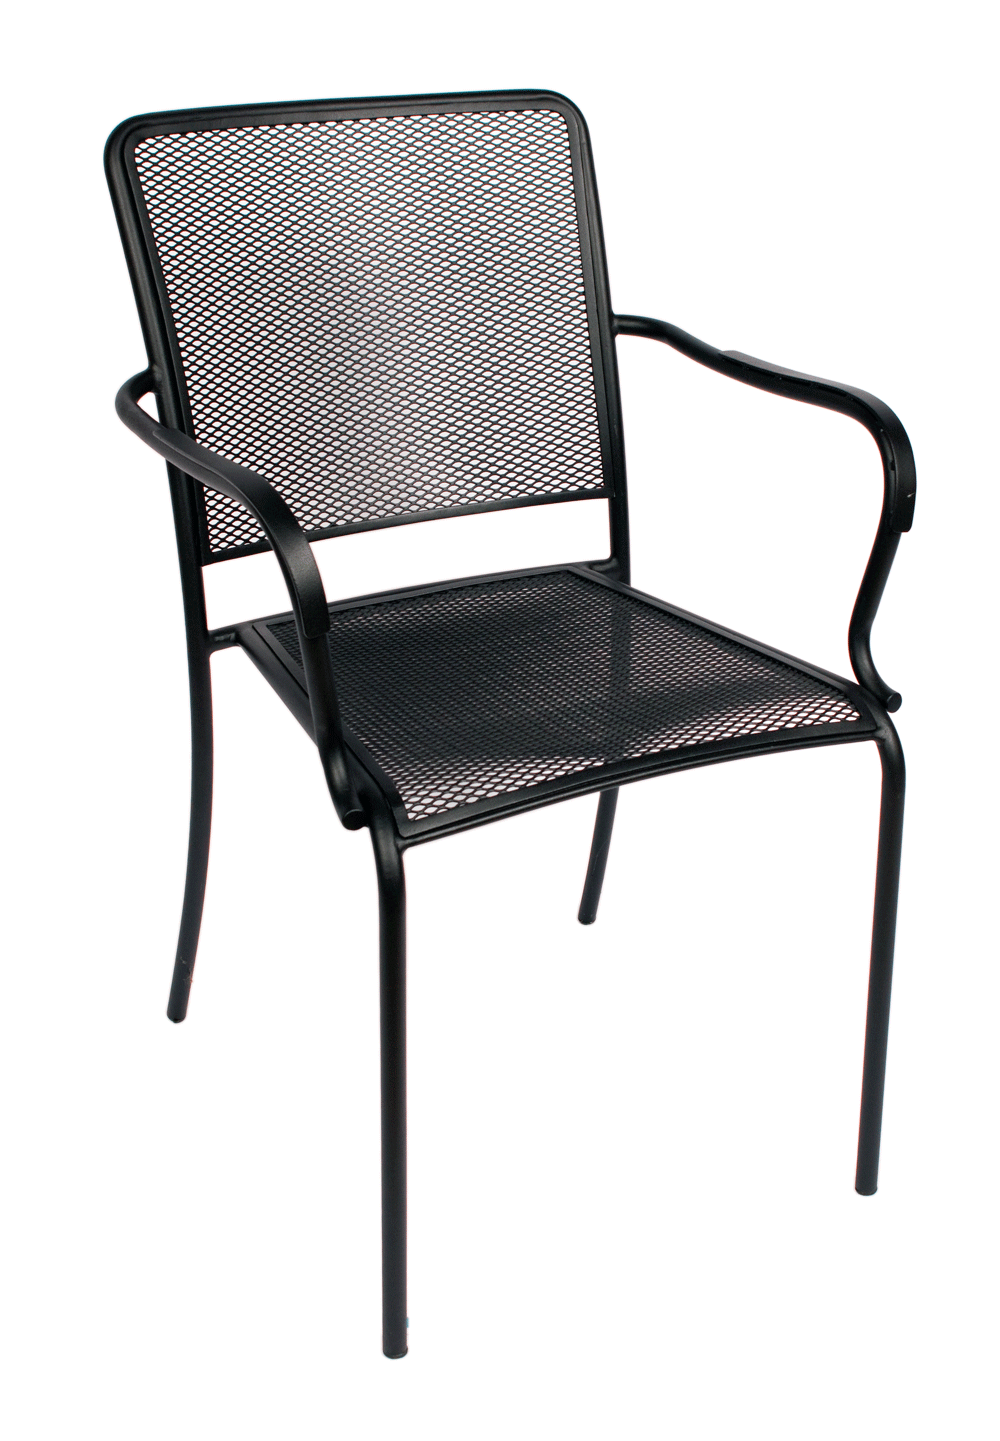 Indoor/Outdoor Galvanized Steel Micro Mesh Seat And Back Stacking Chair W/  Arms (Chesapeake)